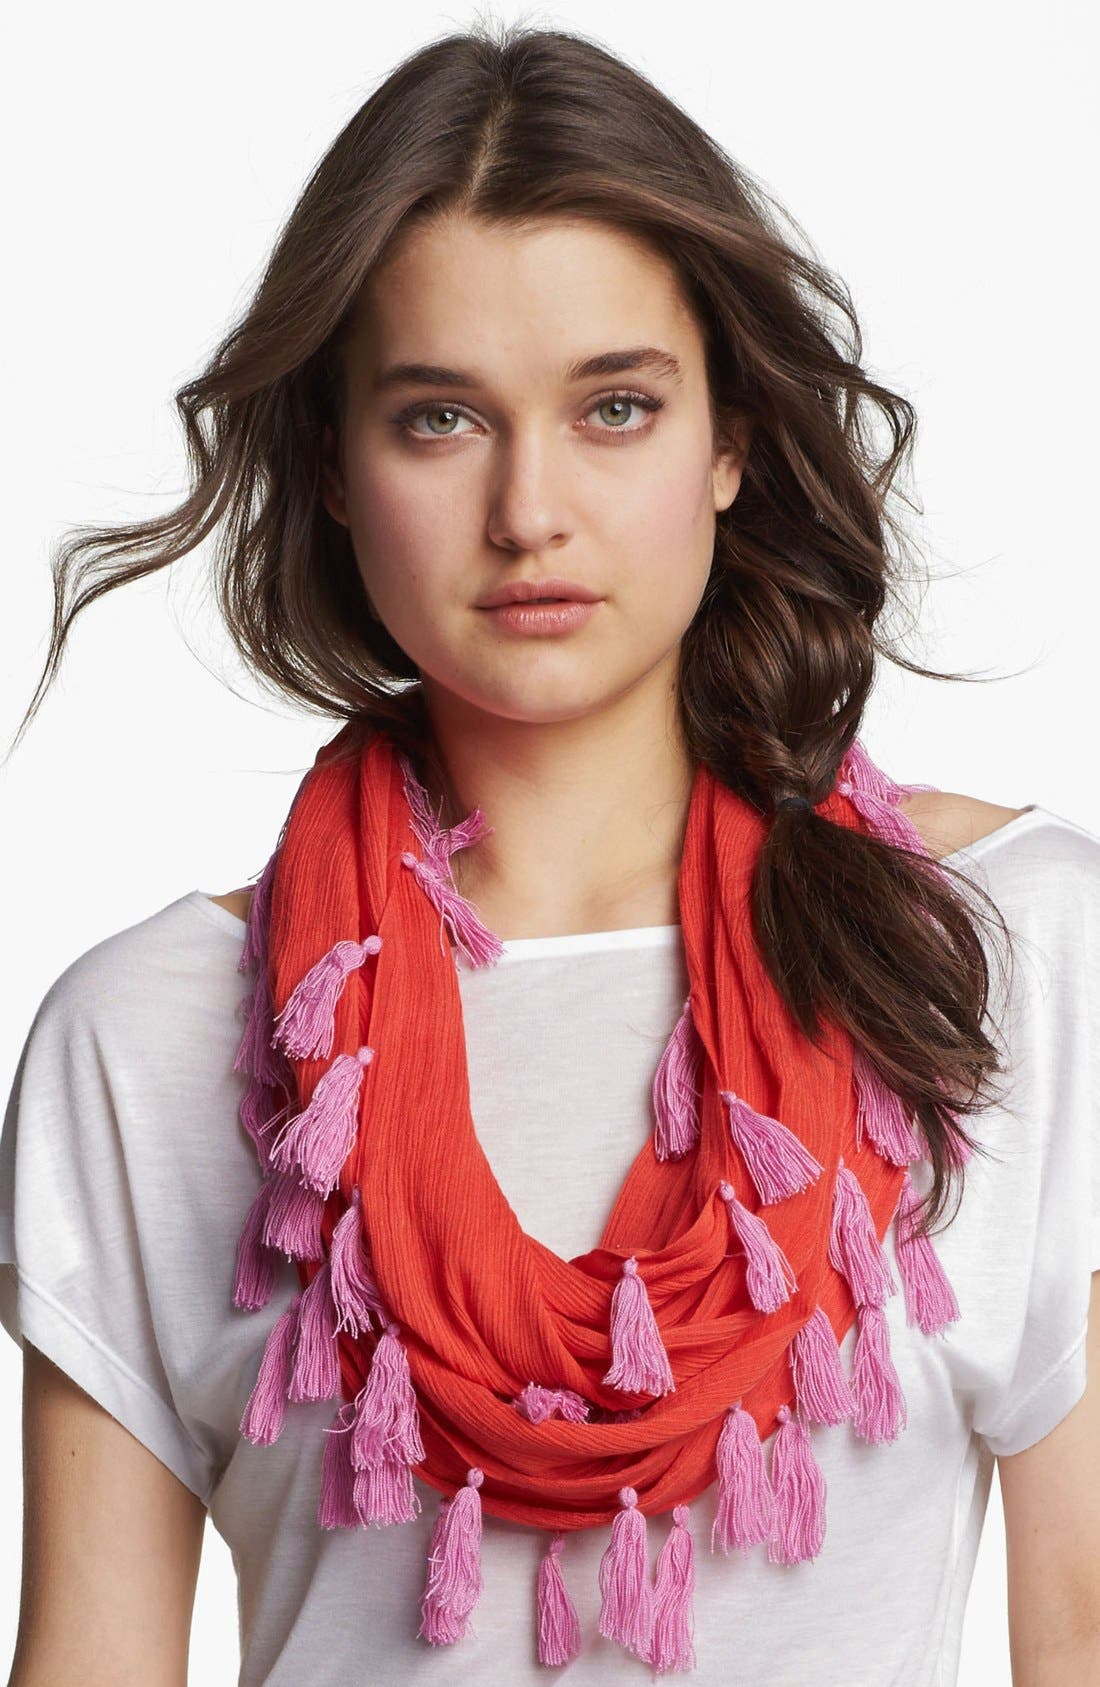 Alternate Image 1 Selected - Collection XIIX Tasseled Infinity Scarf